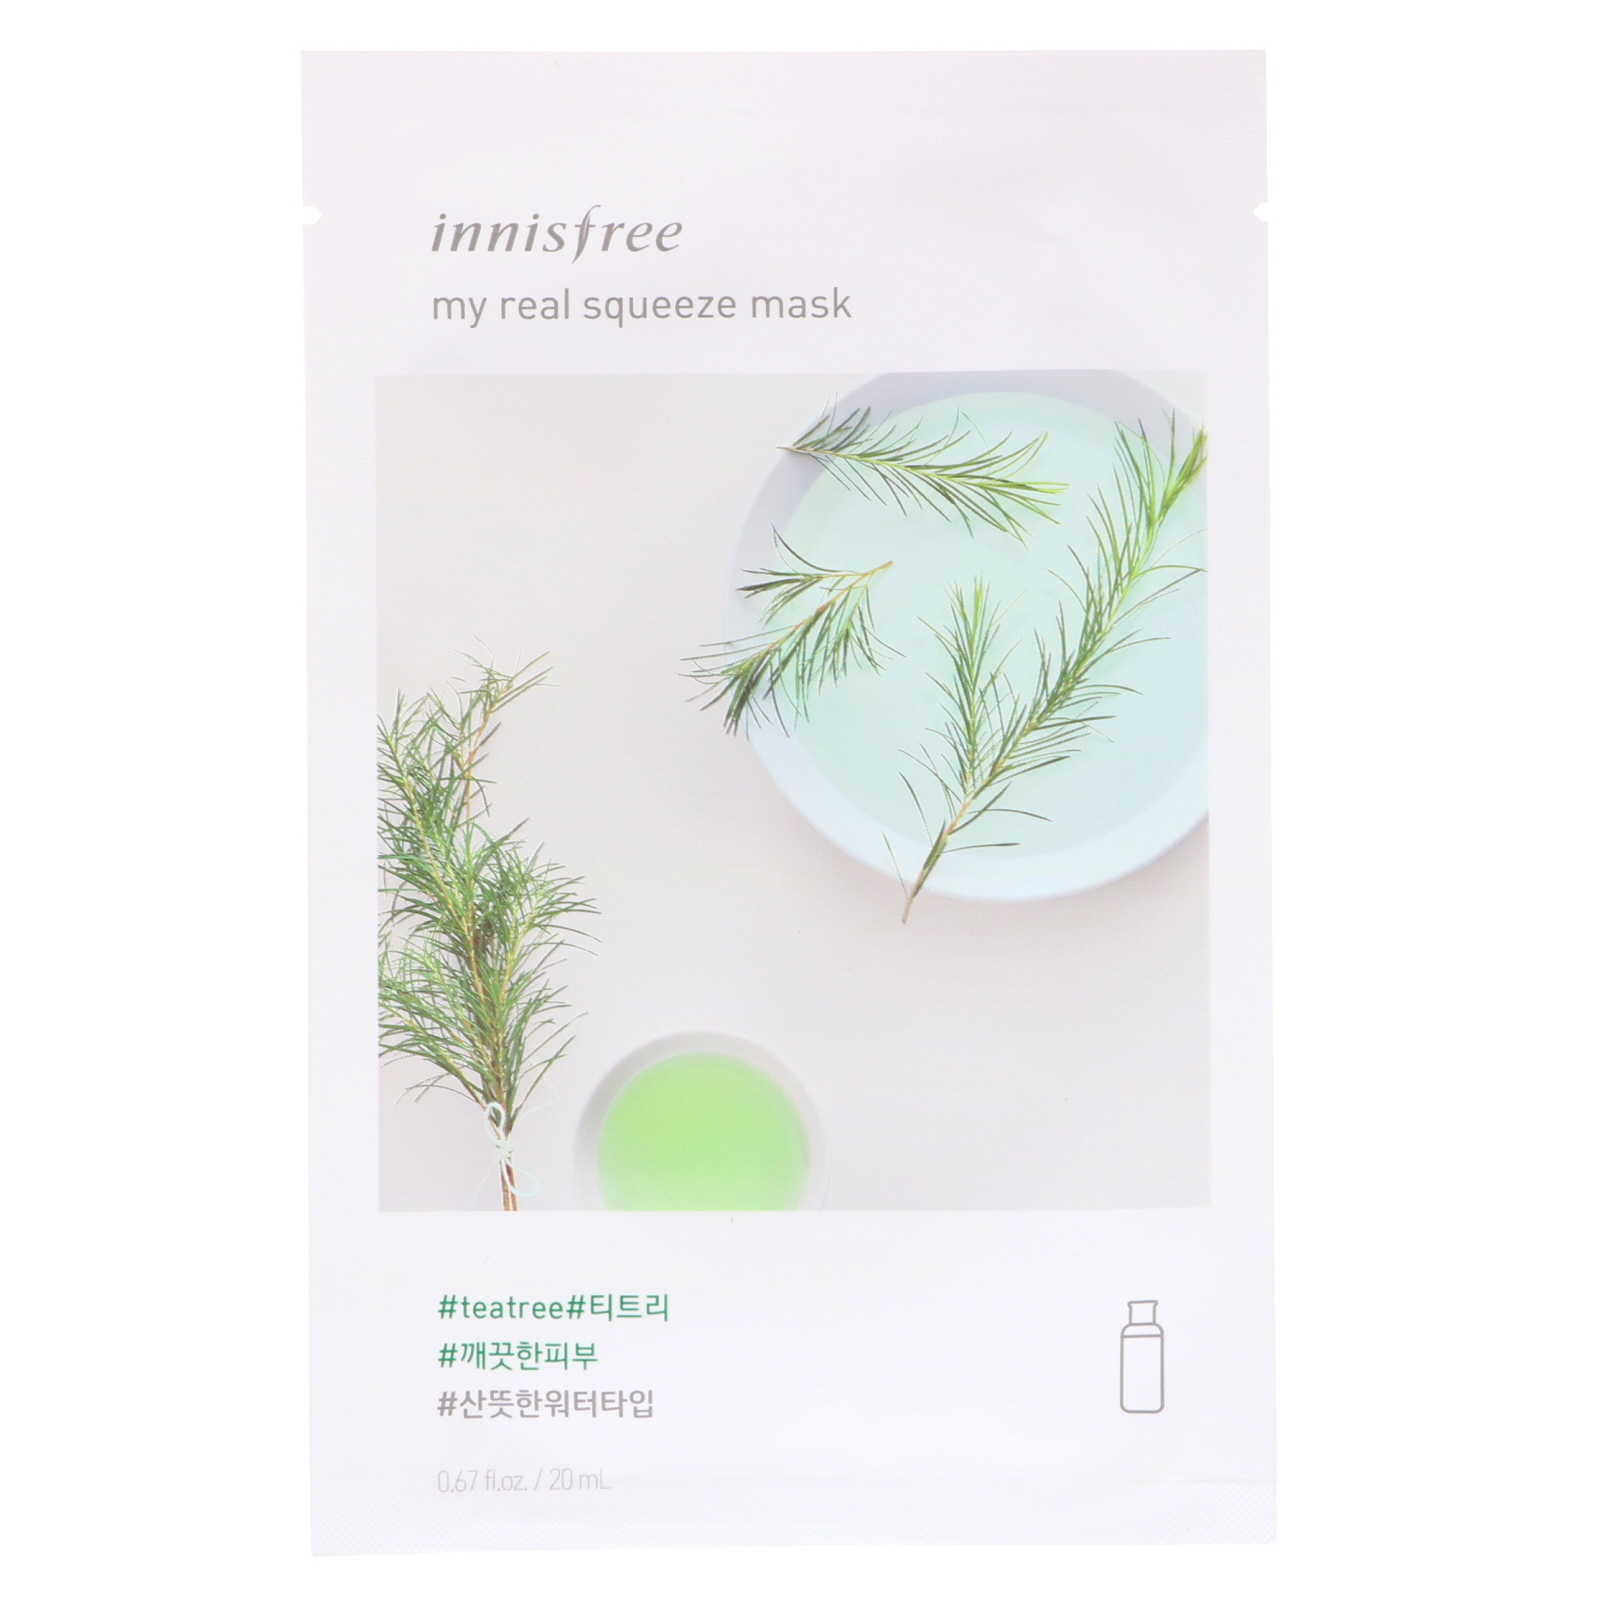 Innisfree - My Real Squeeze Sheet Mask - Tea Tree (20ml) image